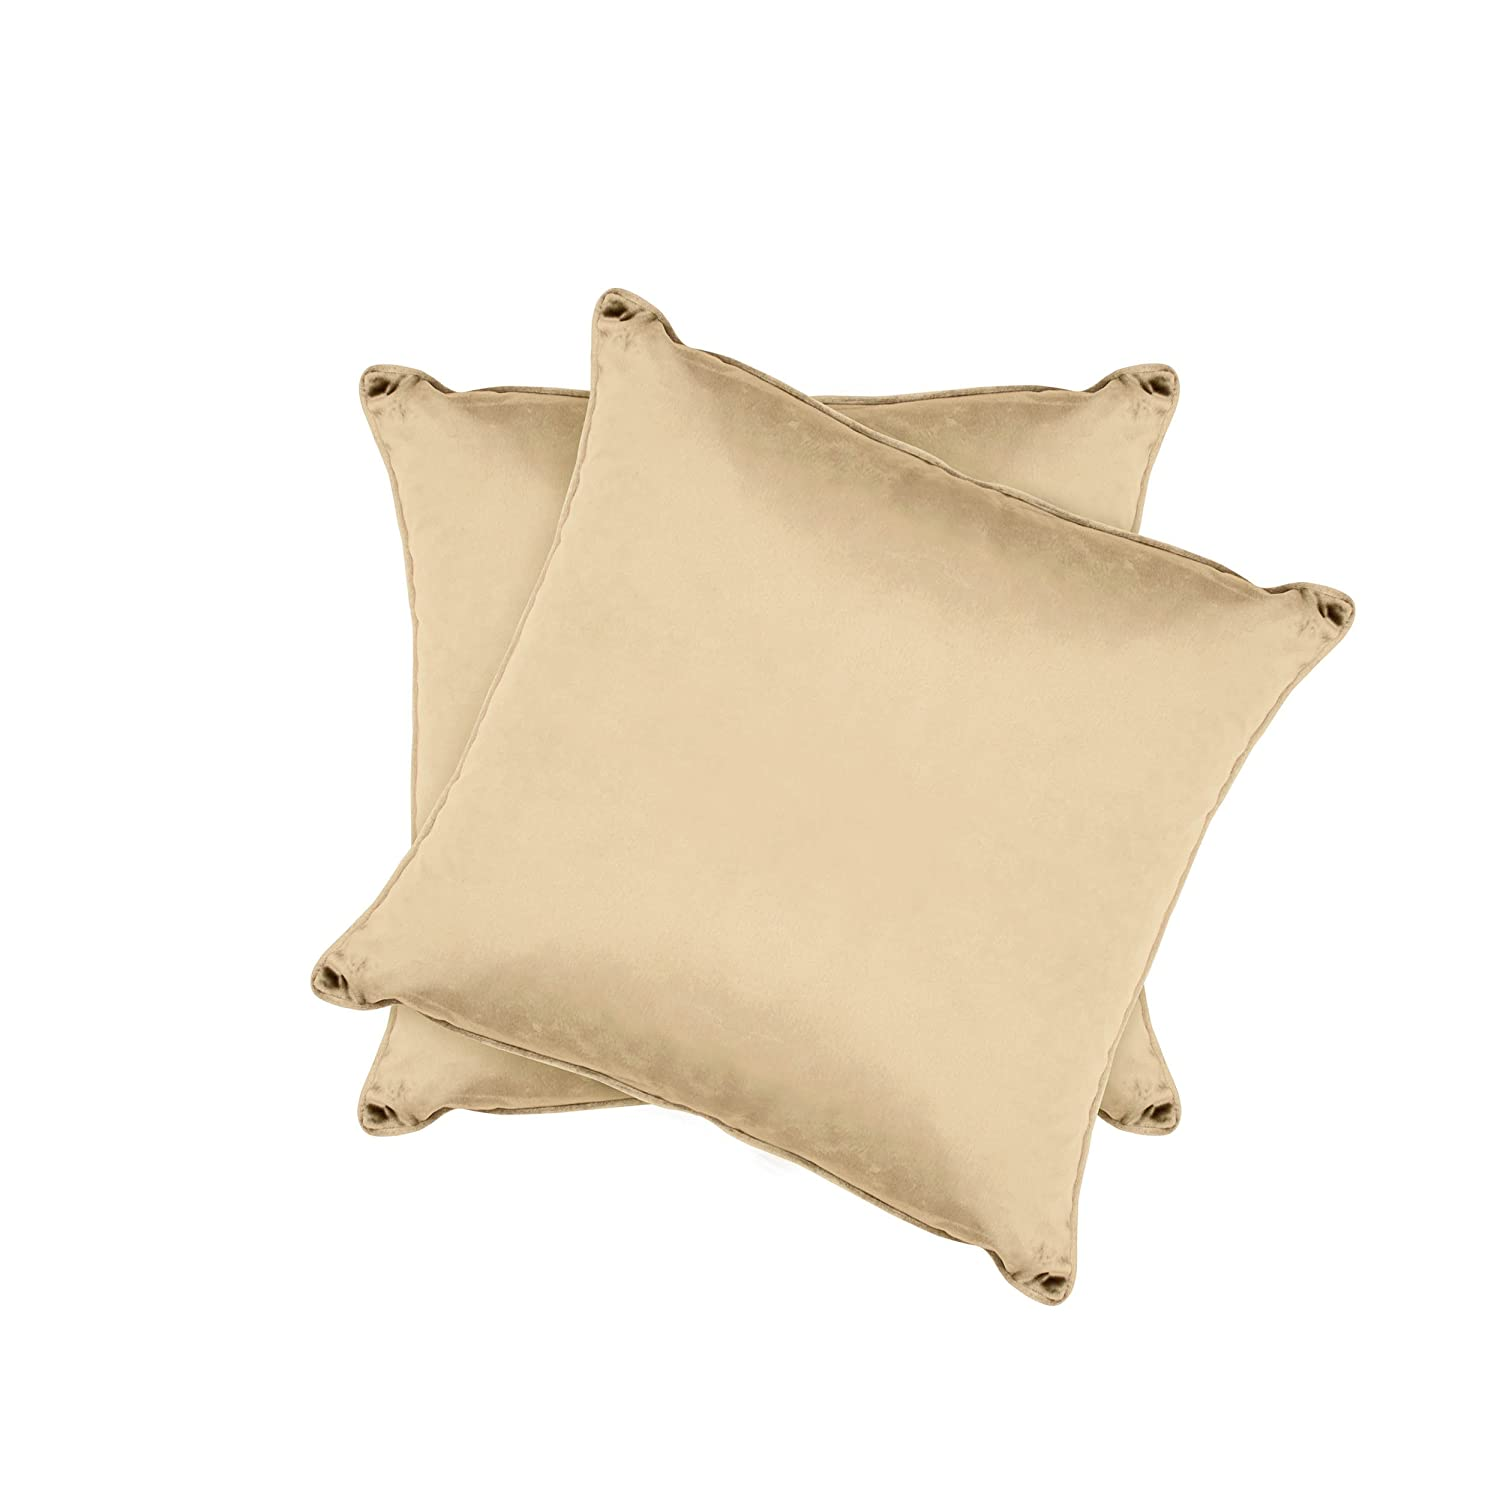 generation linen lily blanket buy pillow gallery where harbor cushion cover new pillows i can serena astoria